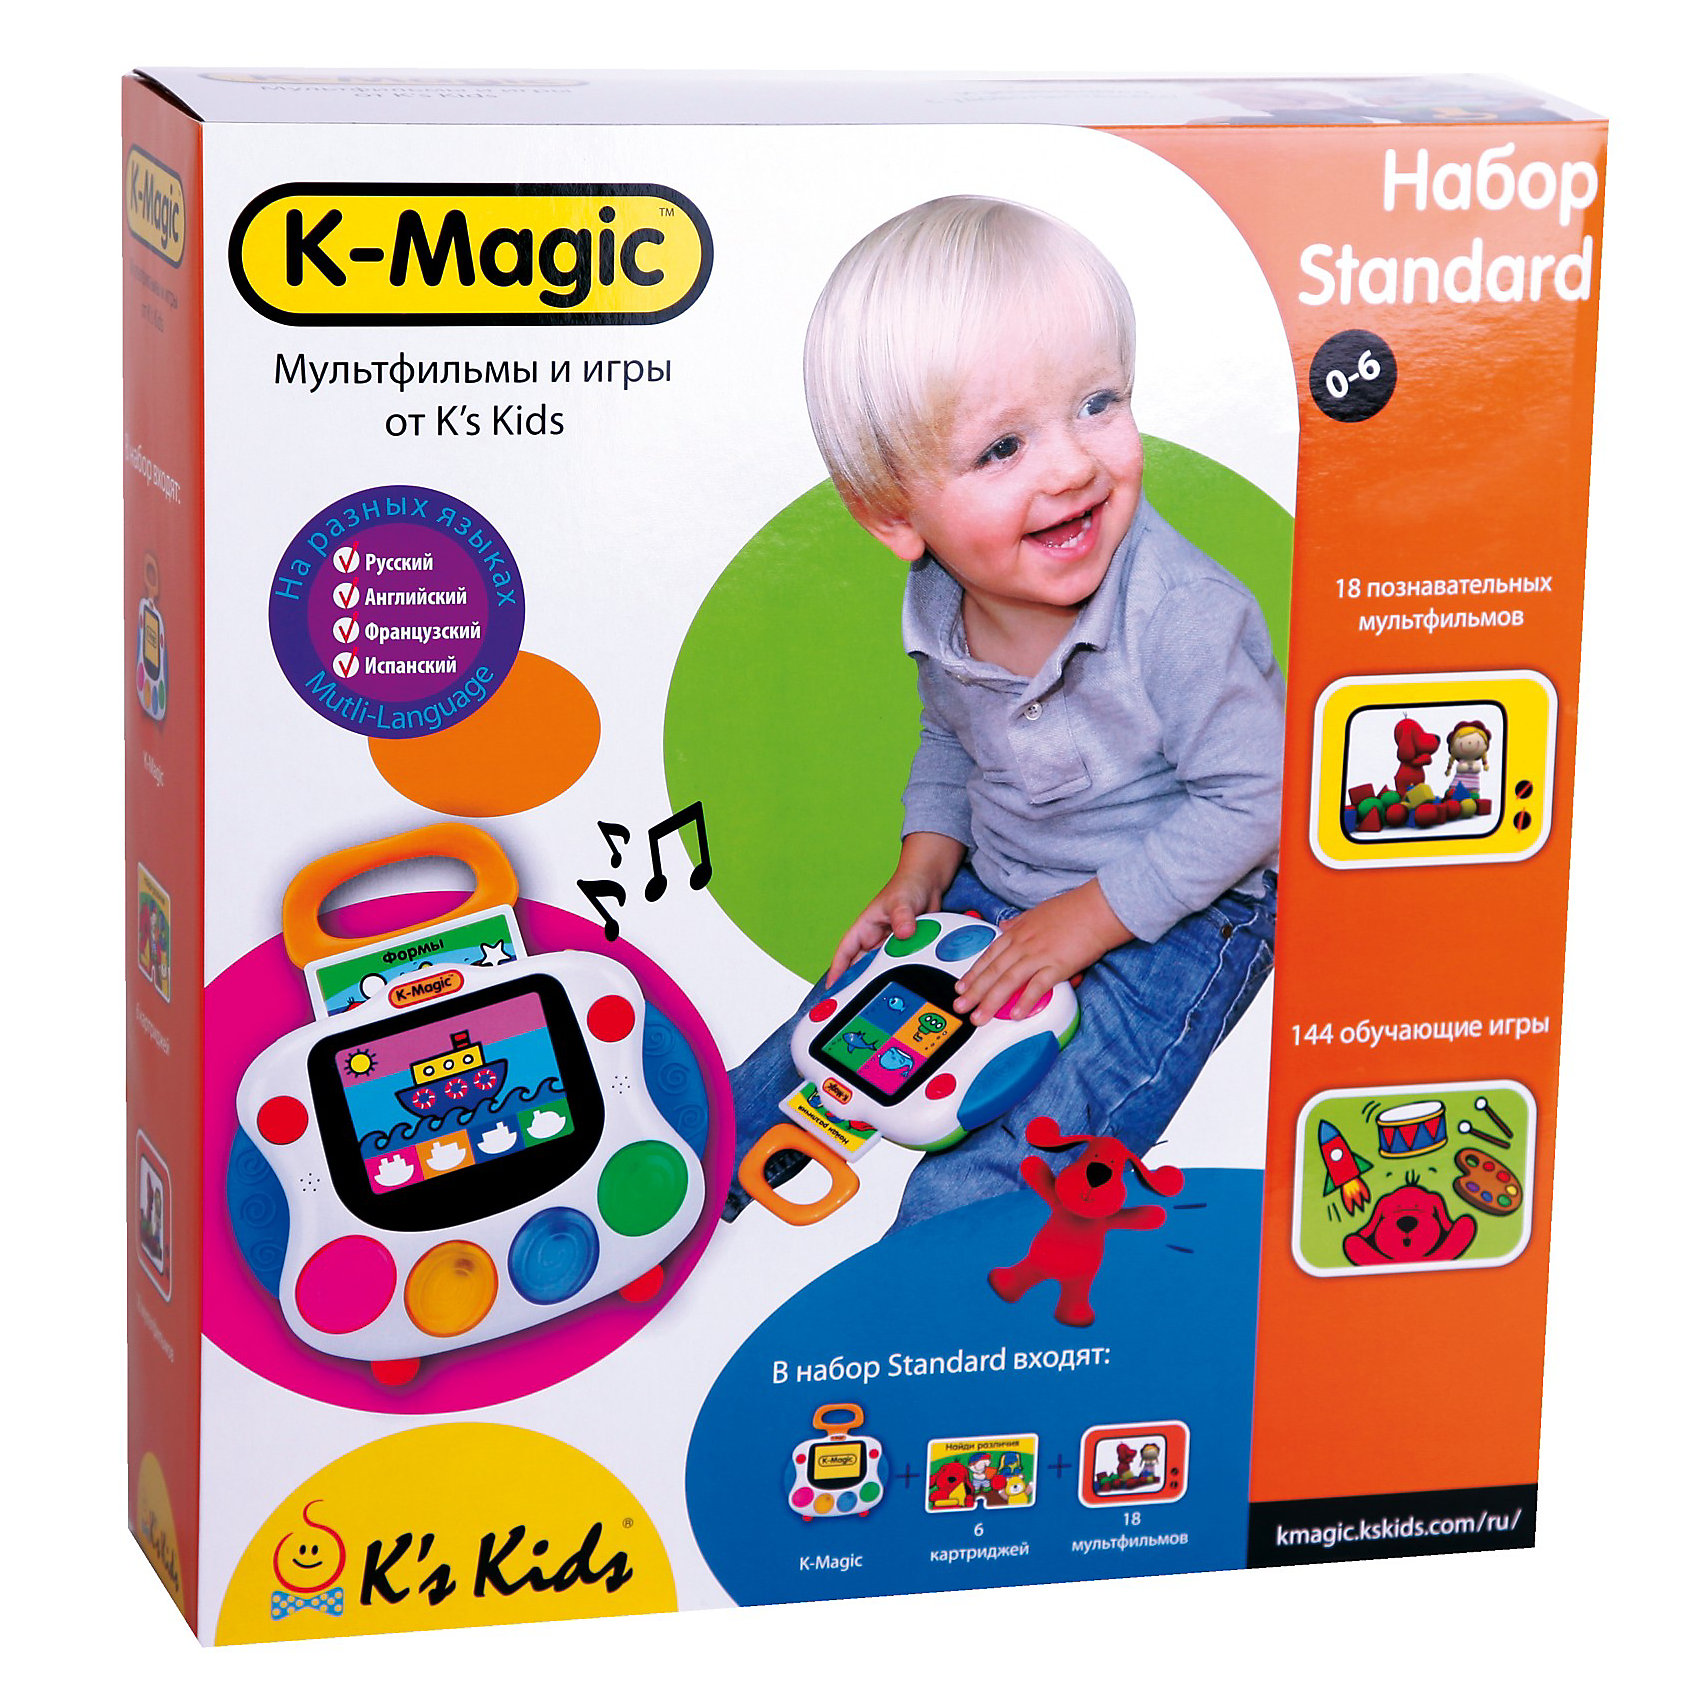 Набор K-Magic Standard, K`s Kids